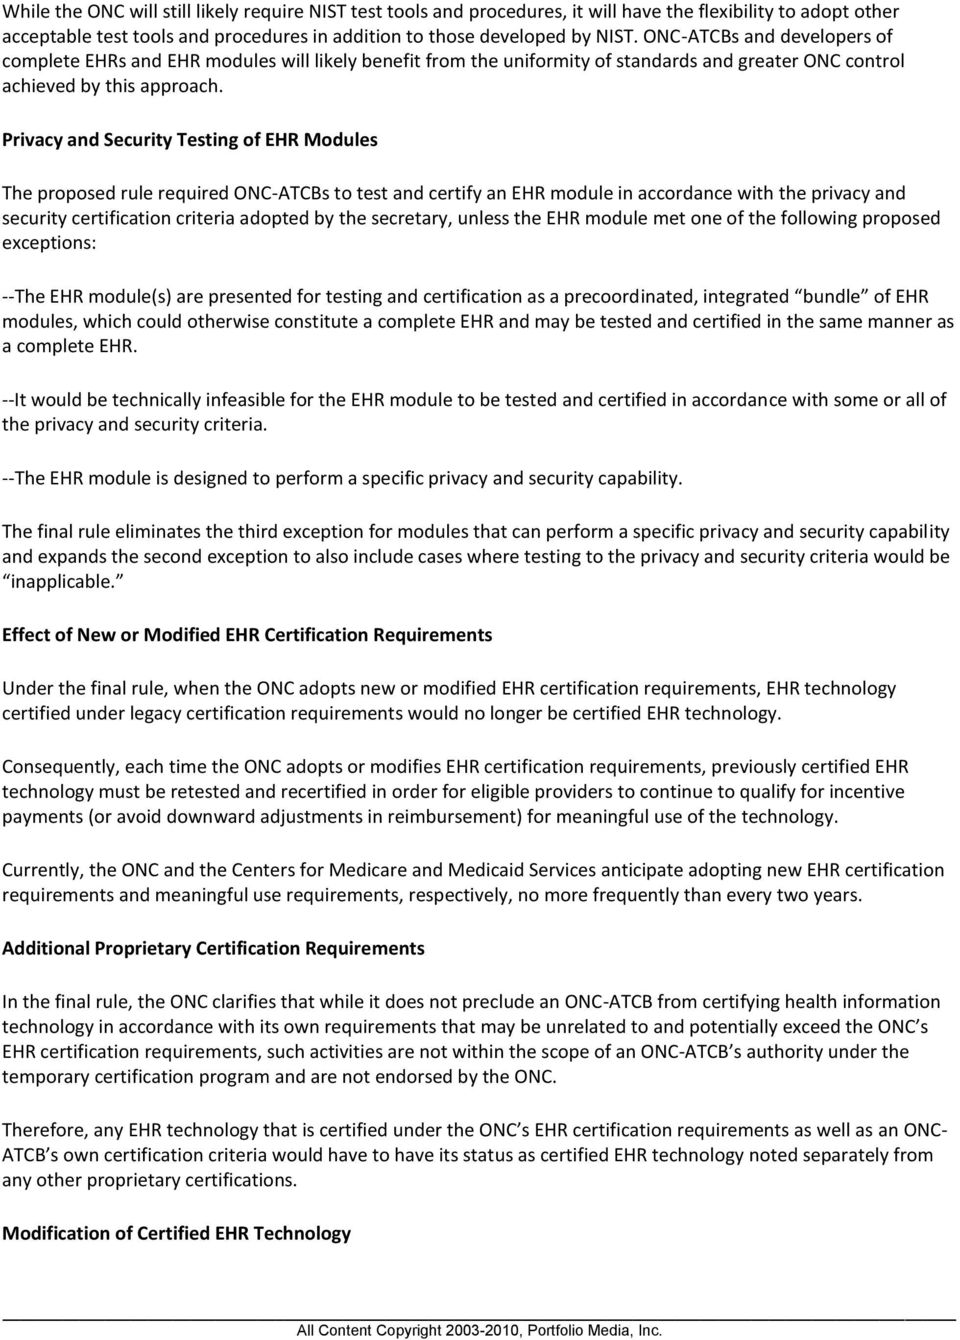 Privacy and Security Testing of EHR Modules The proposed rule required ONC-ATCBs to test and certify an EHR module in accordance with the privacy and security certification criteria adopted by the